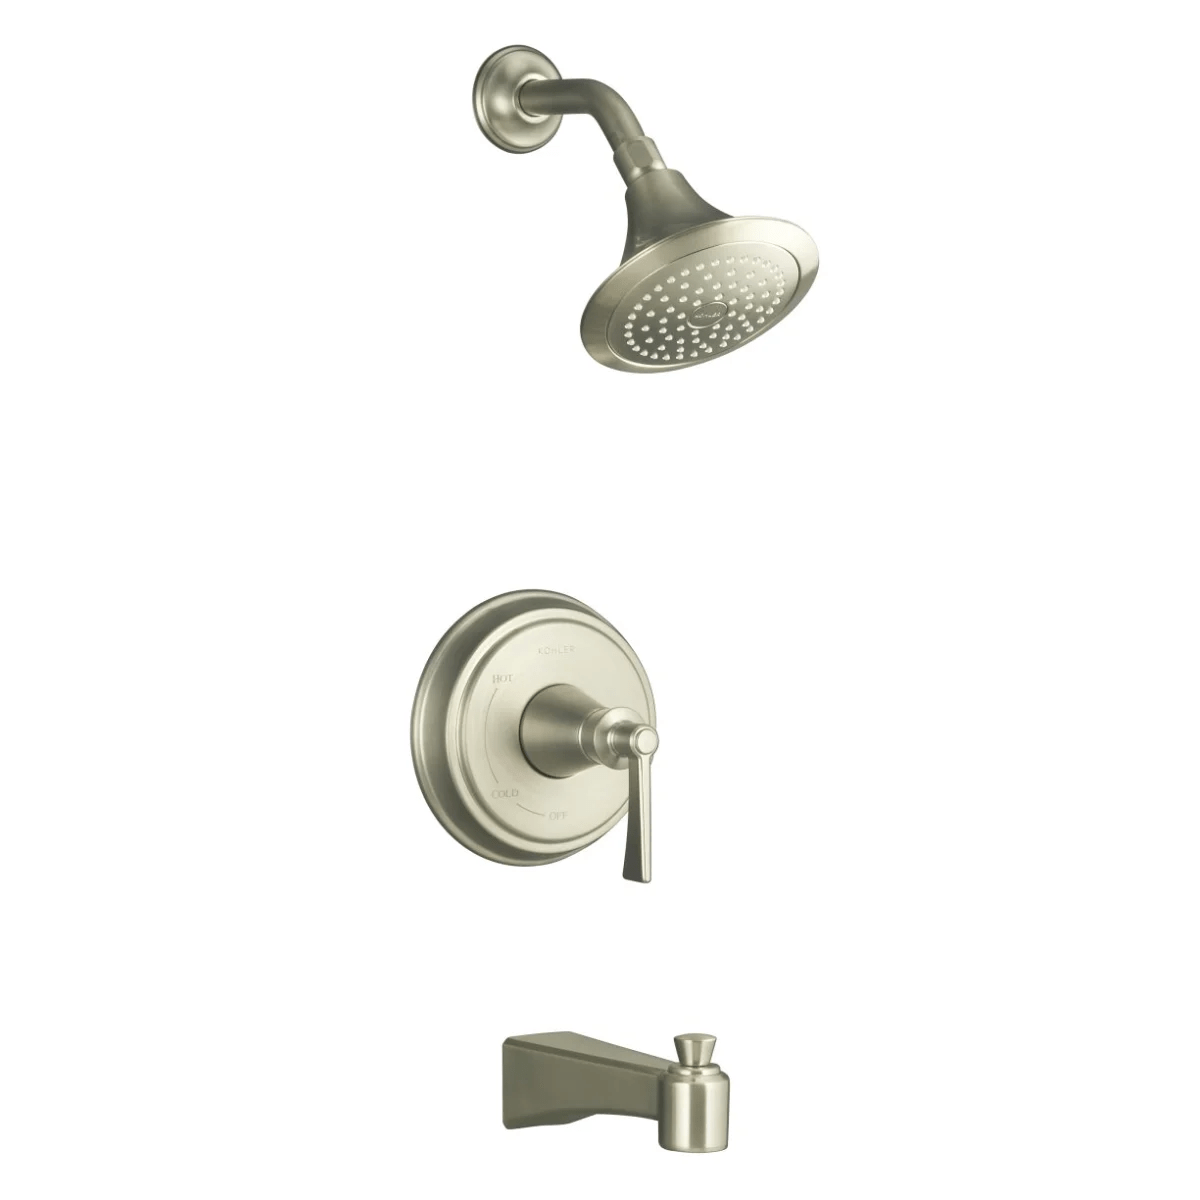 Kohler K T11077 4 Bn Brushed Nickel Archer Rite Temp Single